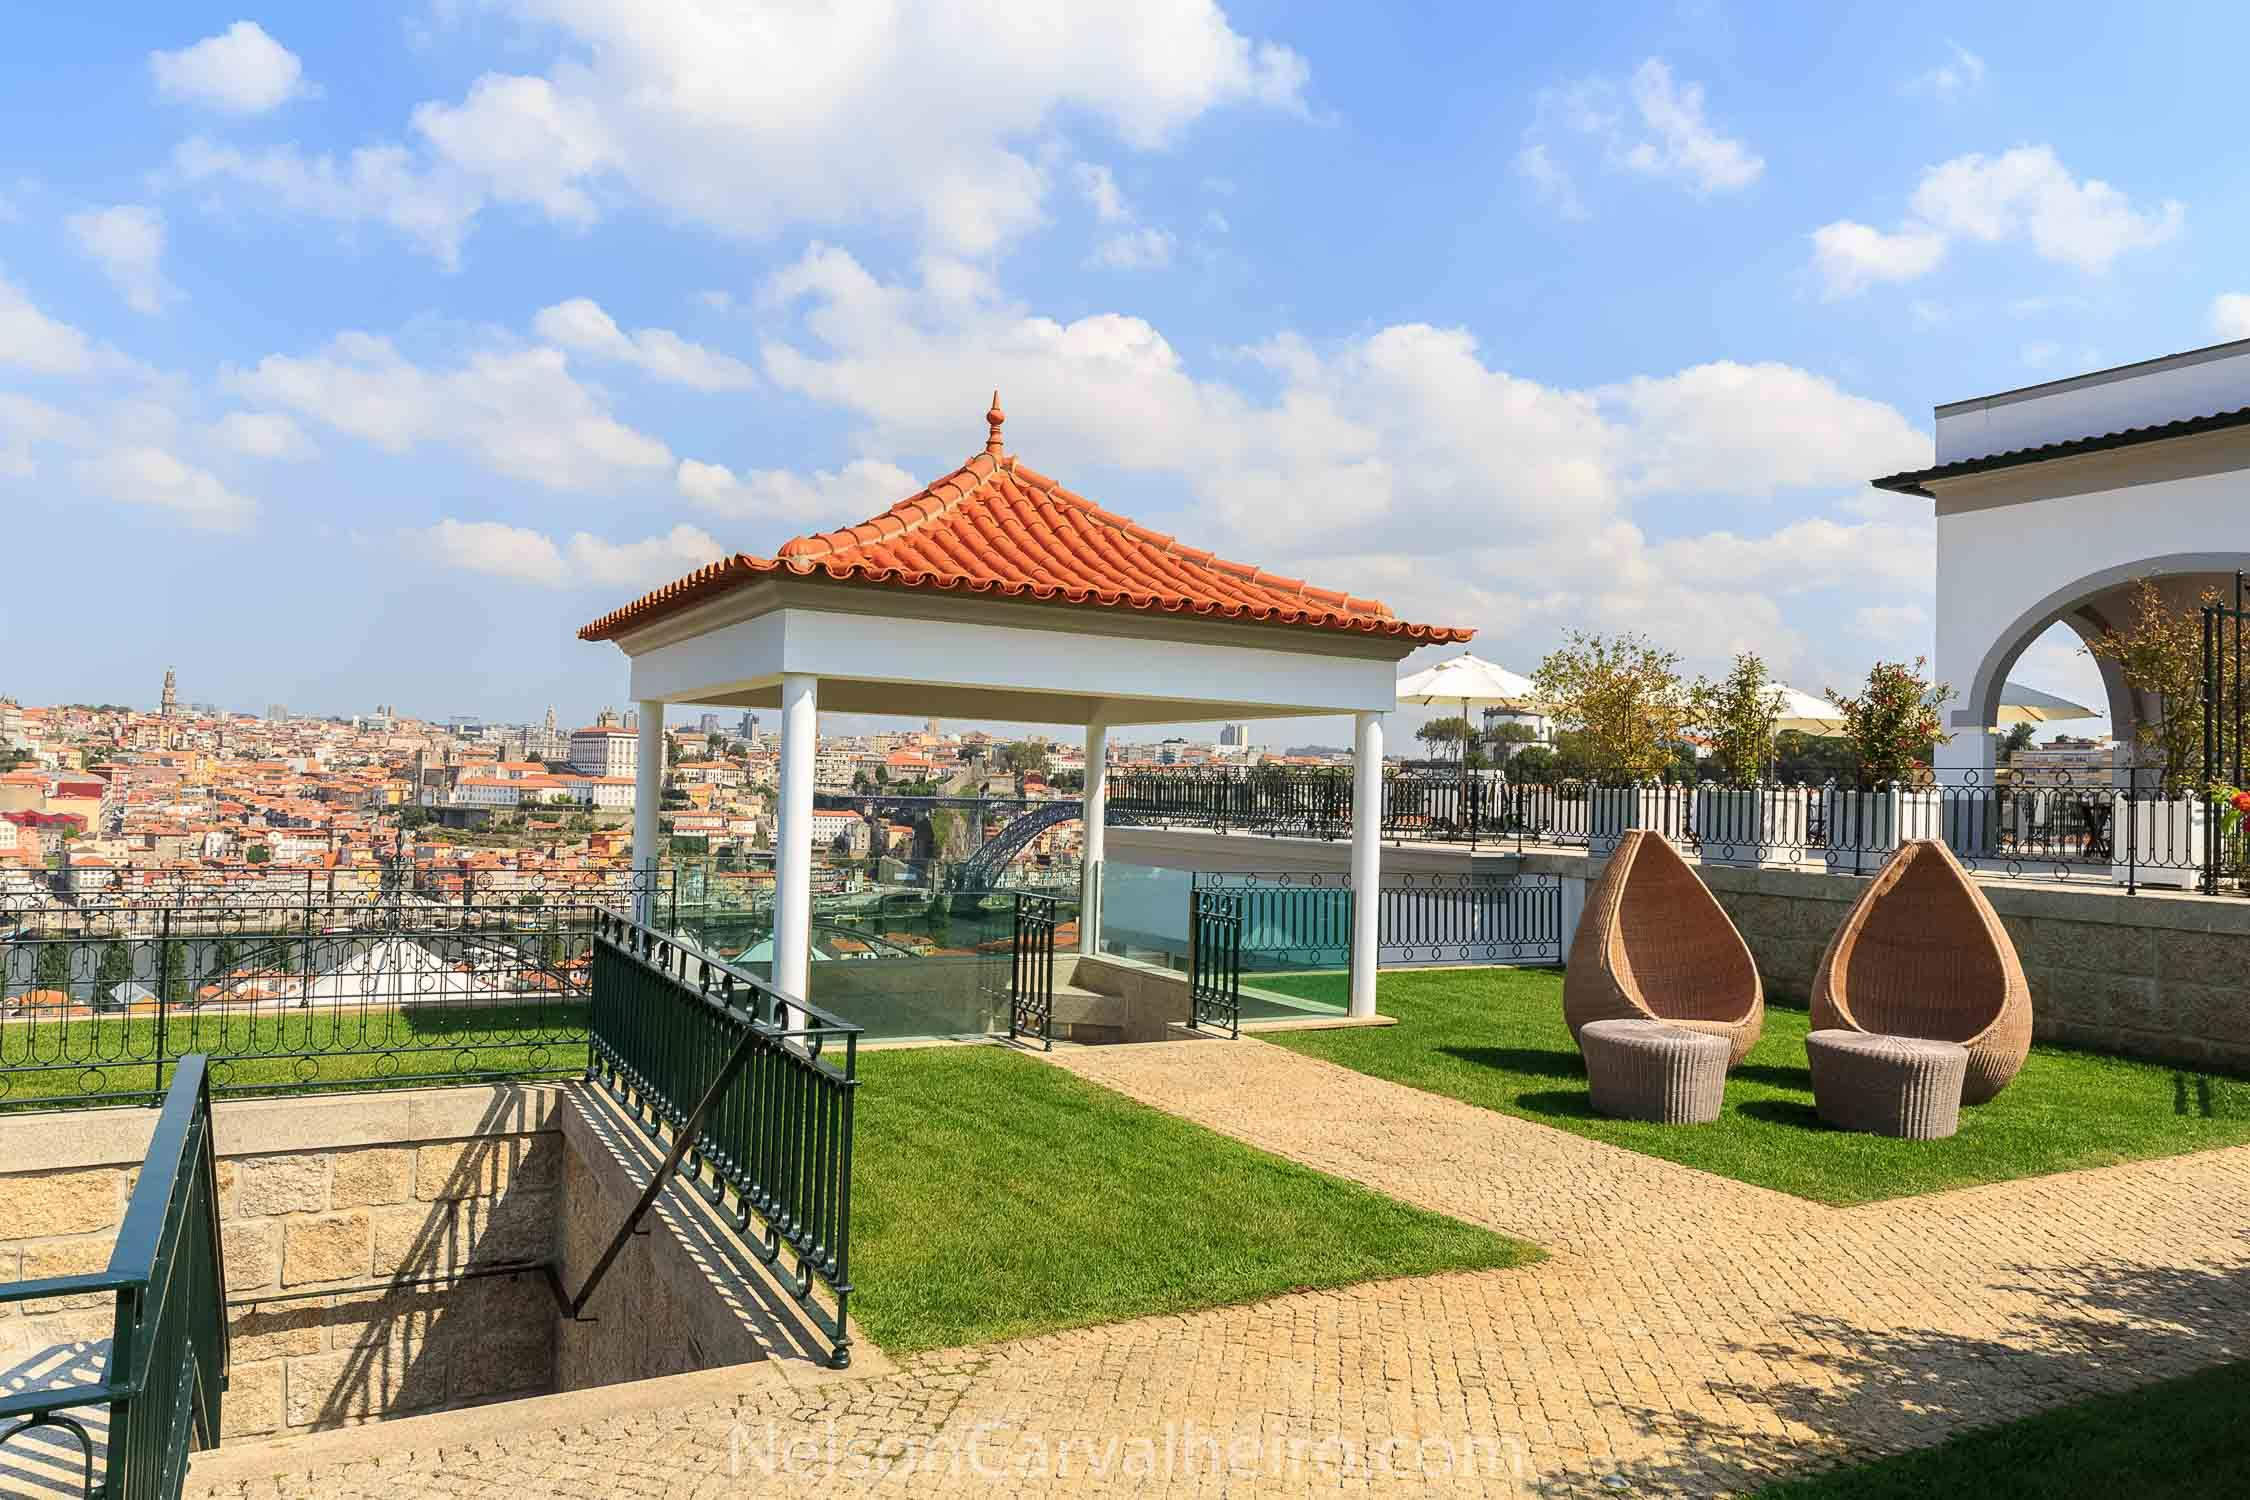 yeatman, amll luxury hotels of the world, best wine hotels in portugal, luxury hotel in porto, best hotels in porto, port wine cellars